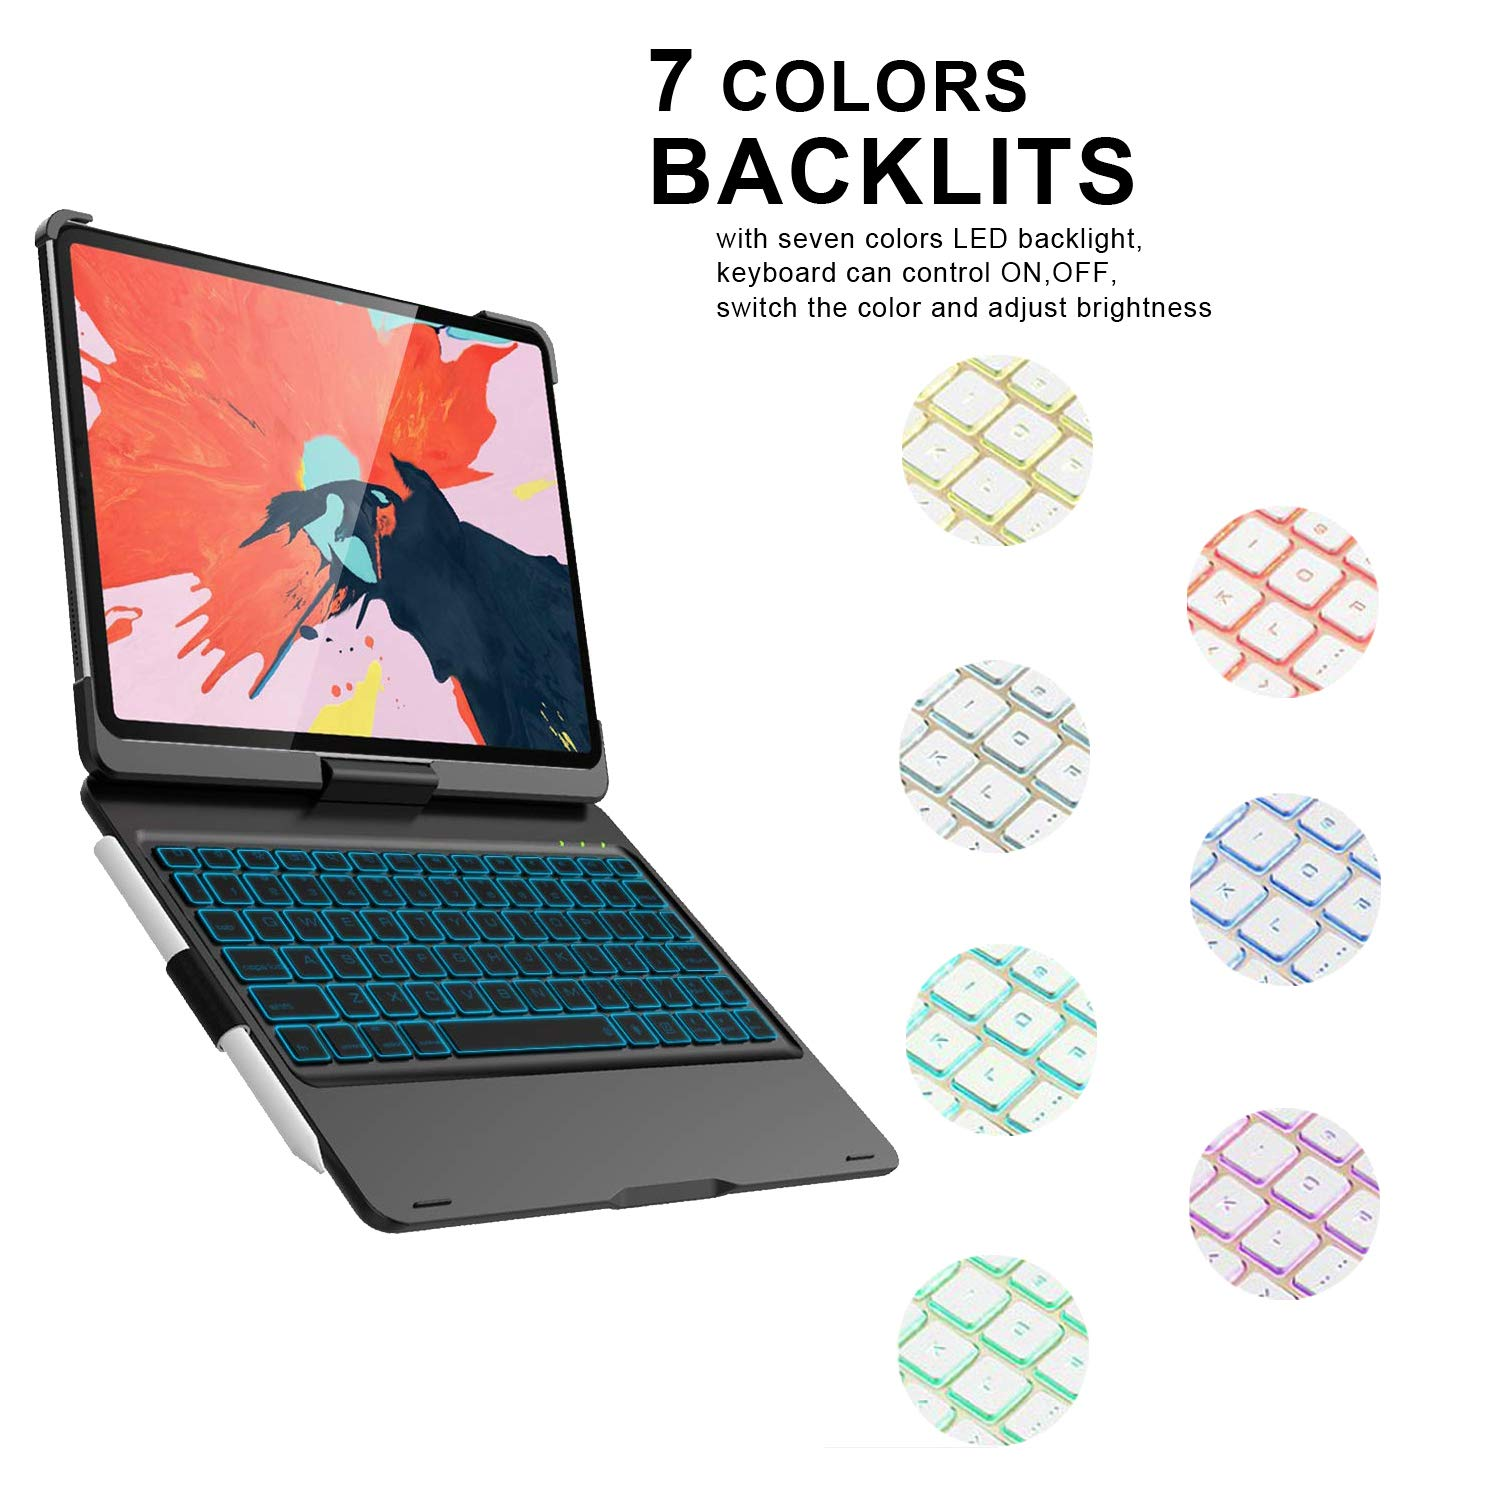 """iPad Keyboard Case for iPad Pro 11"""" 2018 [Supports Pencil 2nd Gen Charging Mode], VANKY 360 Rotate Wireless/Bluetooth -Thin & Light Smart Backlit 7 Color iPad Case with Keyboard (Black) by VANKY (Image #2)"""